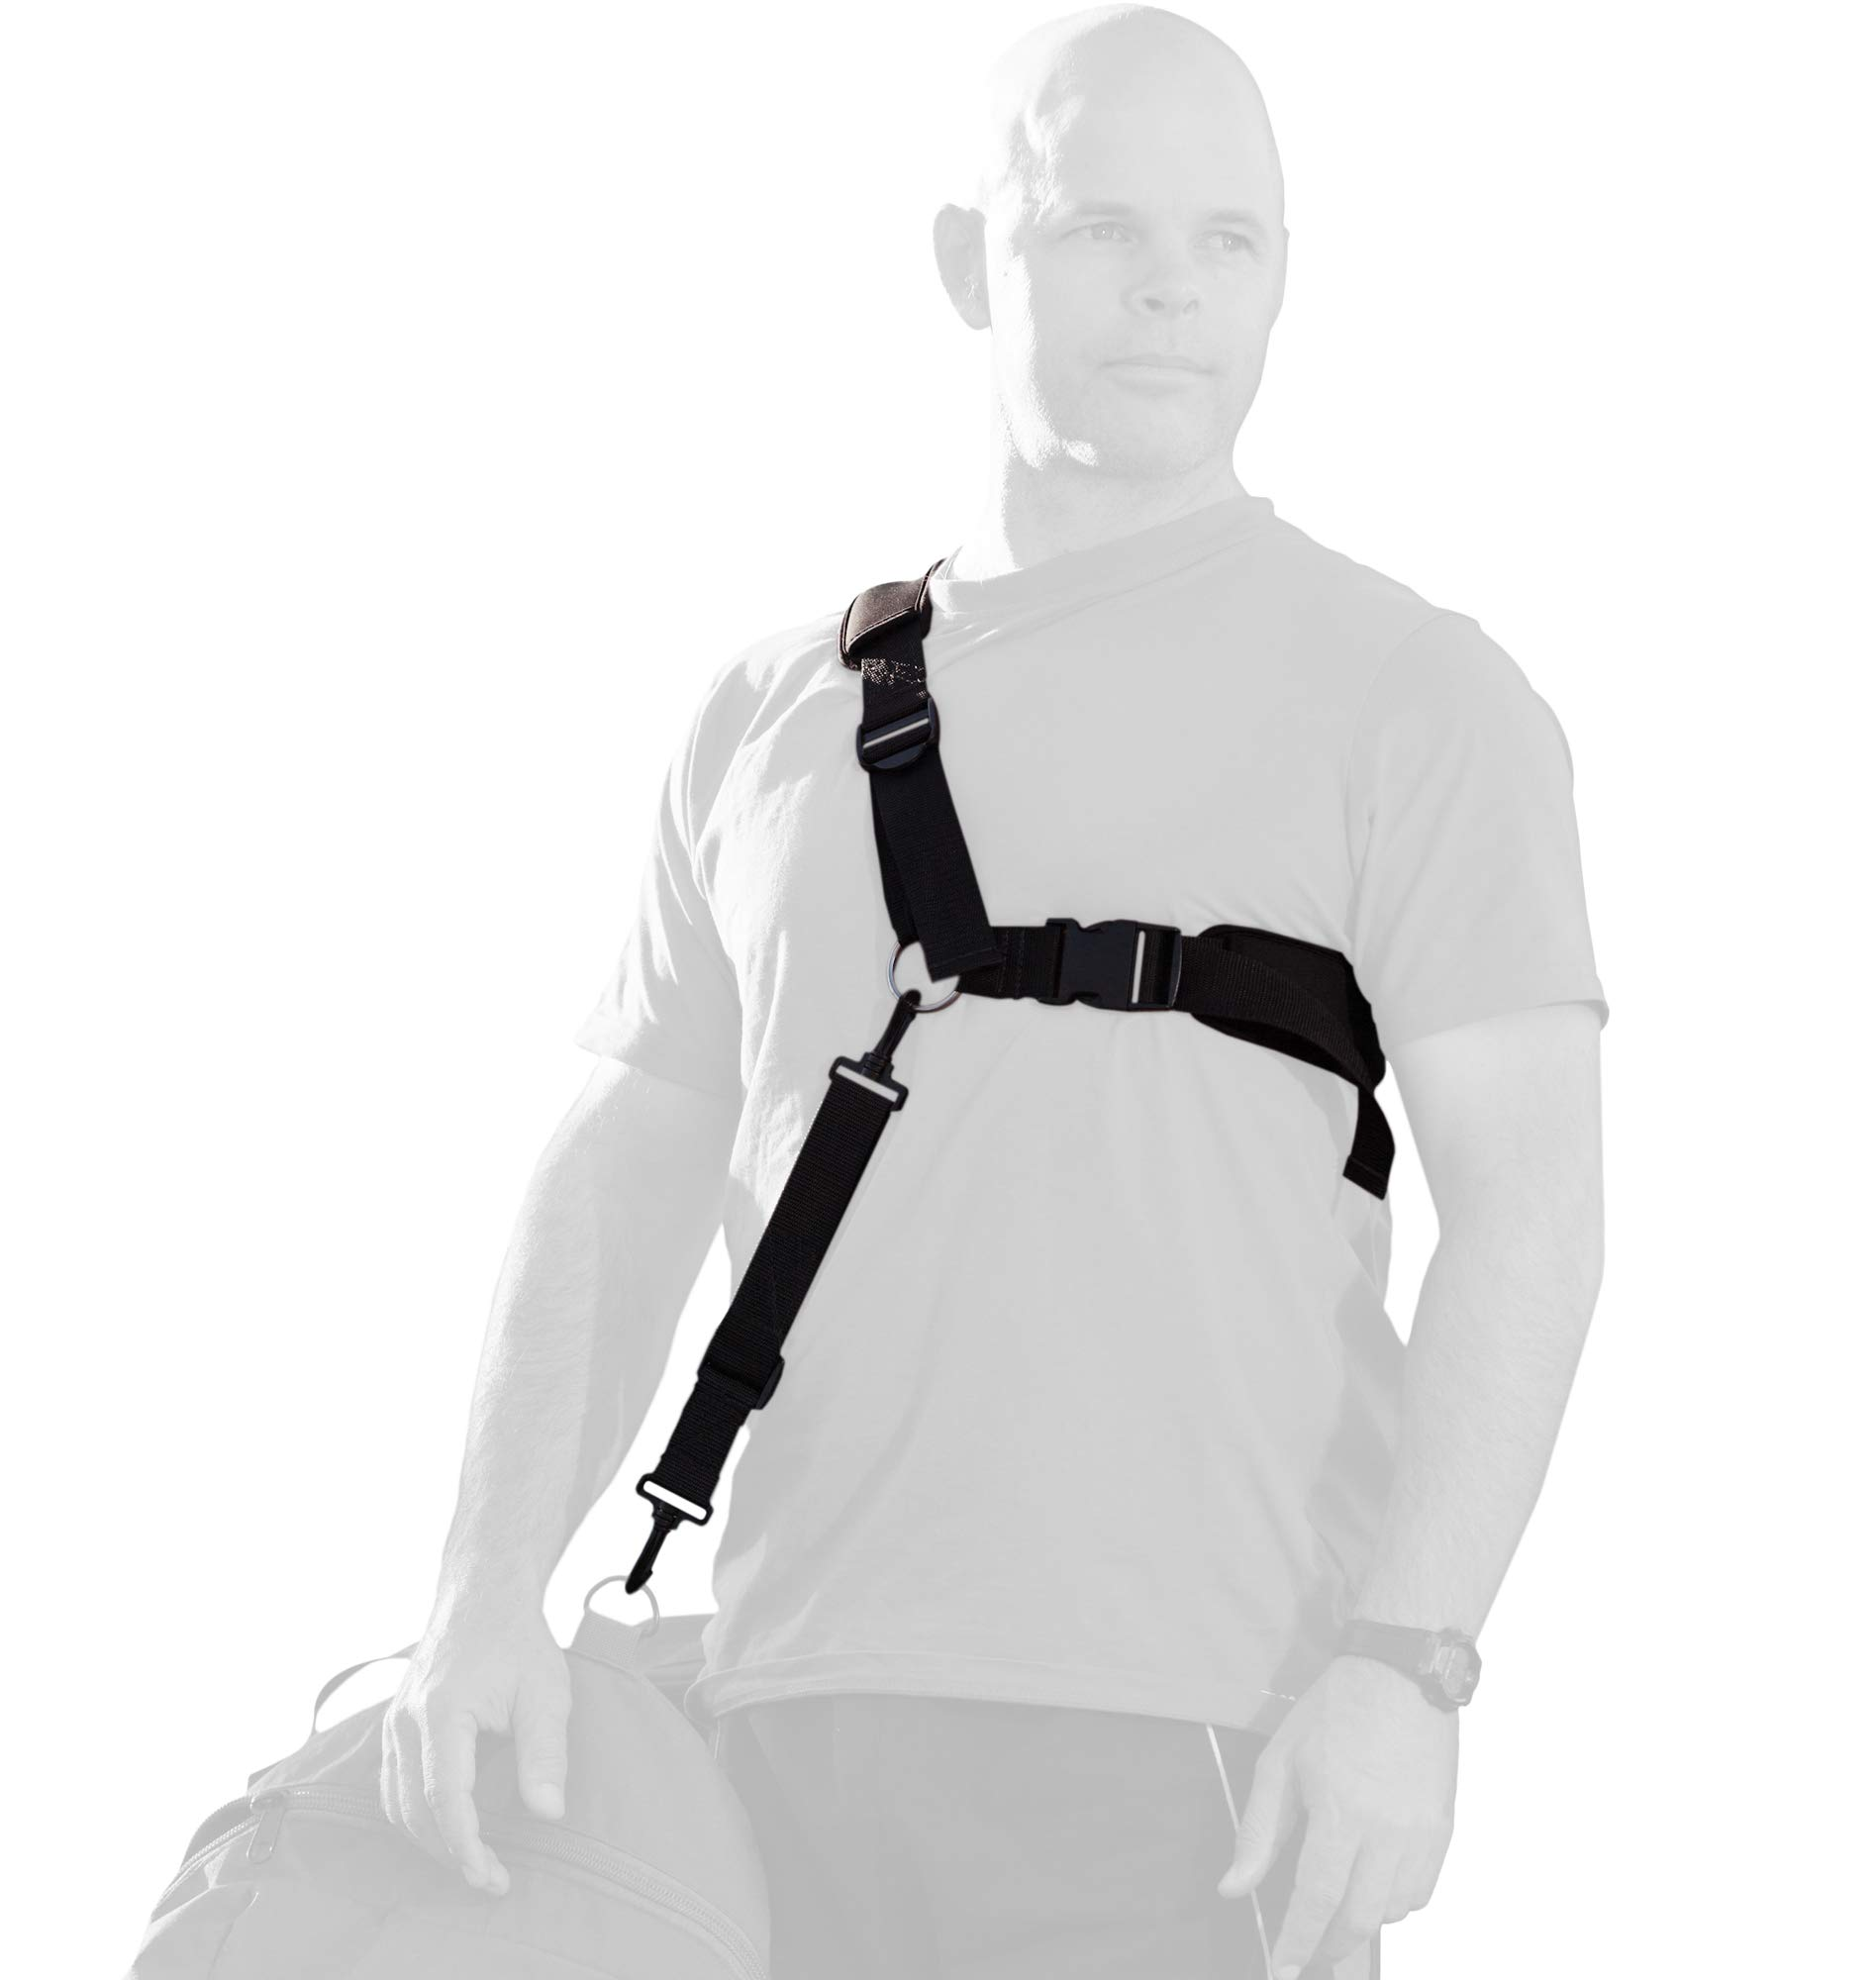 Ergonomic bag strap eases back pain, neck pain, shoulder pain. Provides lumbar support and back support. Enhances benefits of back braces and belts. by Ogre